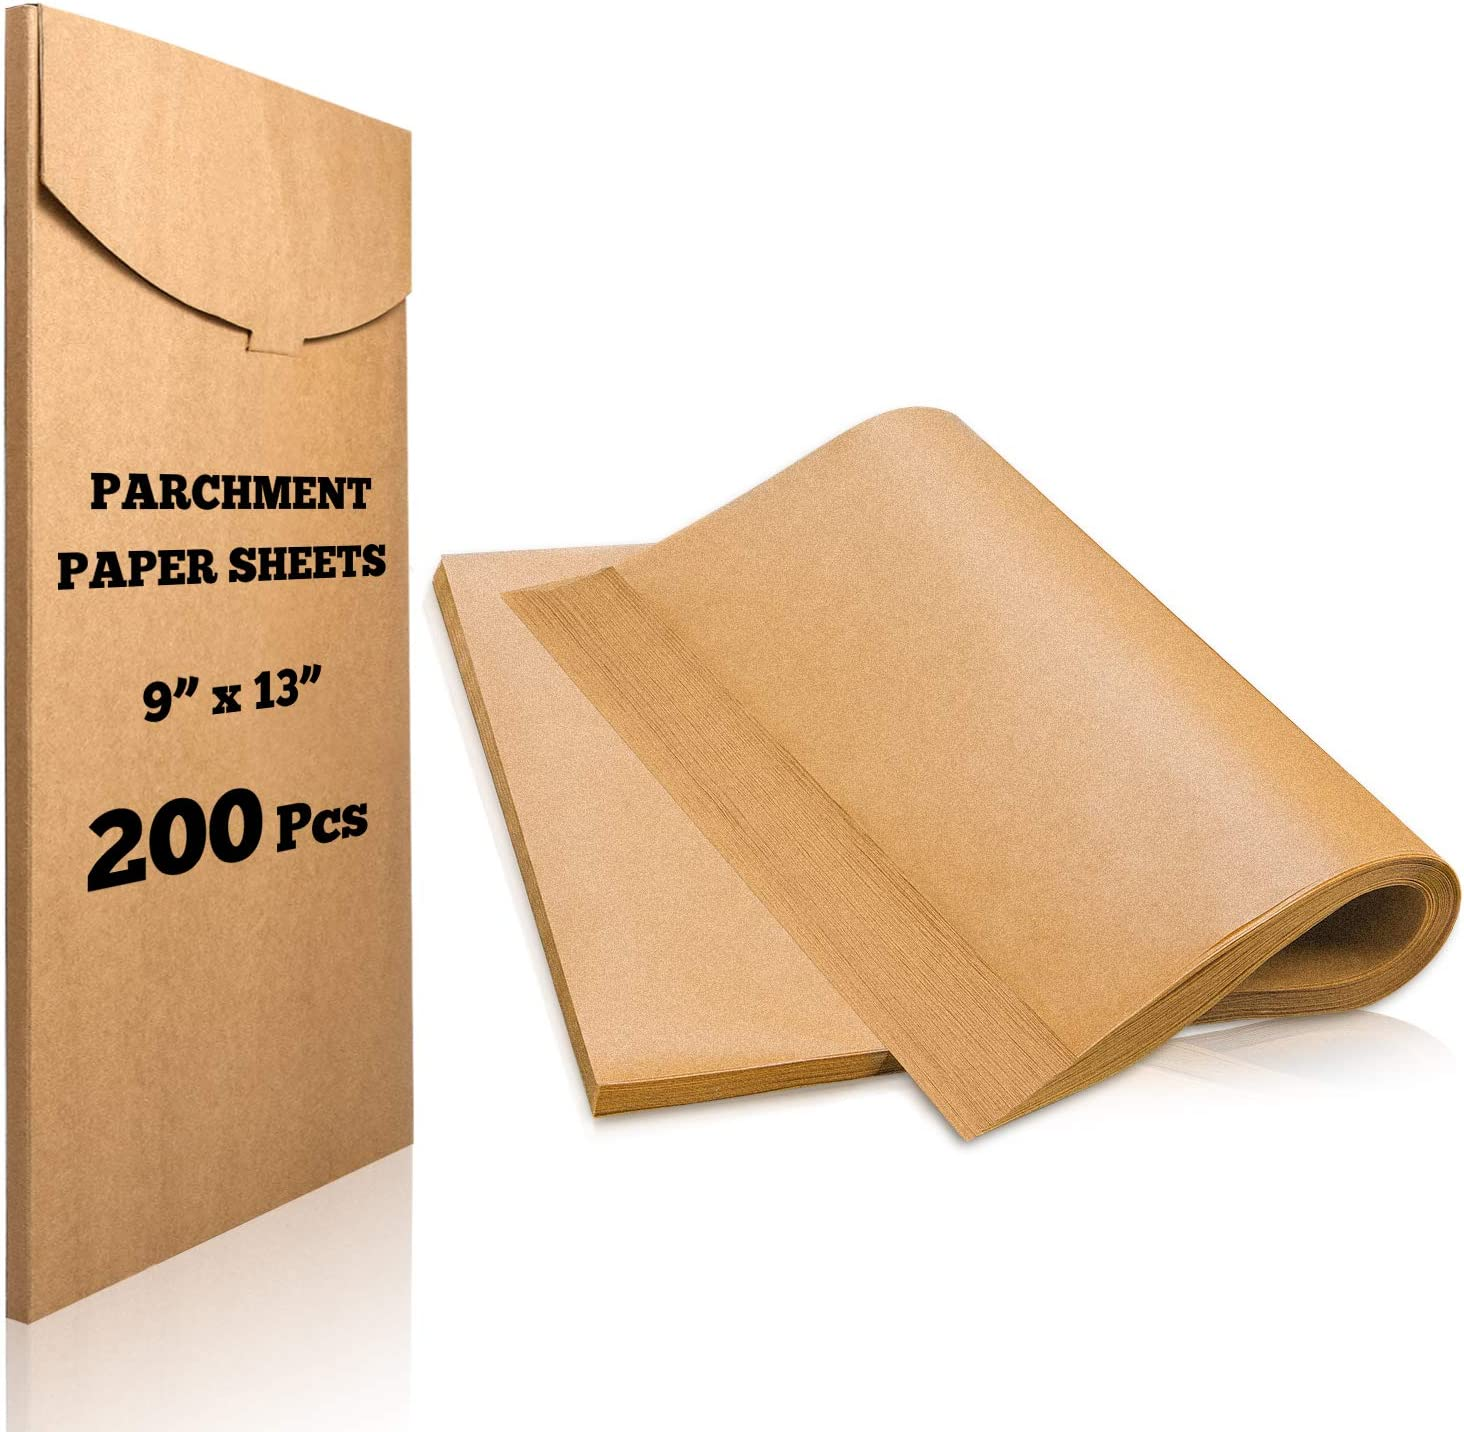 Hiware 200 Pieces Parchment Paper Sheets 9x13 Inches, Precut Non-Stick Parchment Sheets for Baking, Cooking, Grilling, Frying and Steaming - Unbleached, Fit for Quarter Sheet Pans